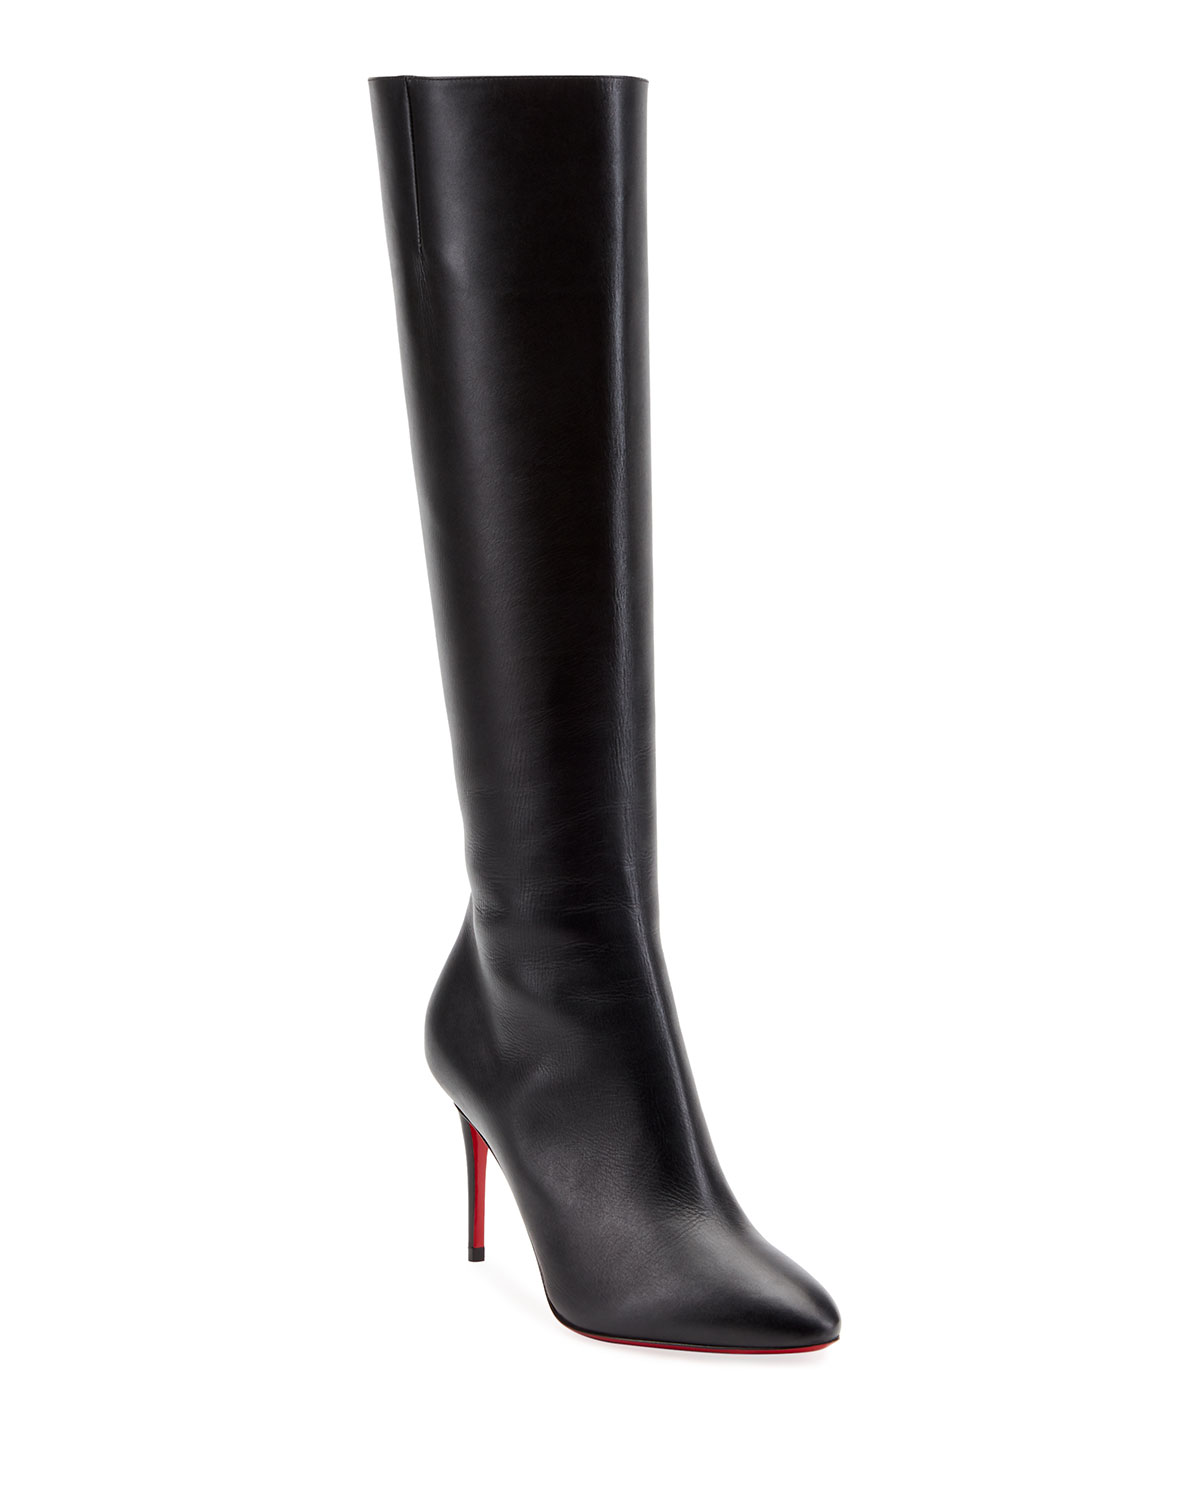 Eloise Botta Red Sole Boots by Christian Louboutin